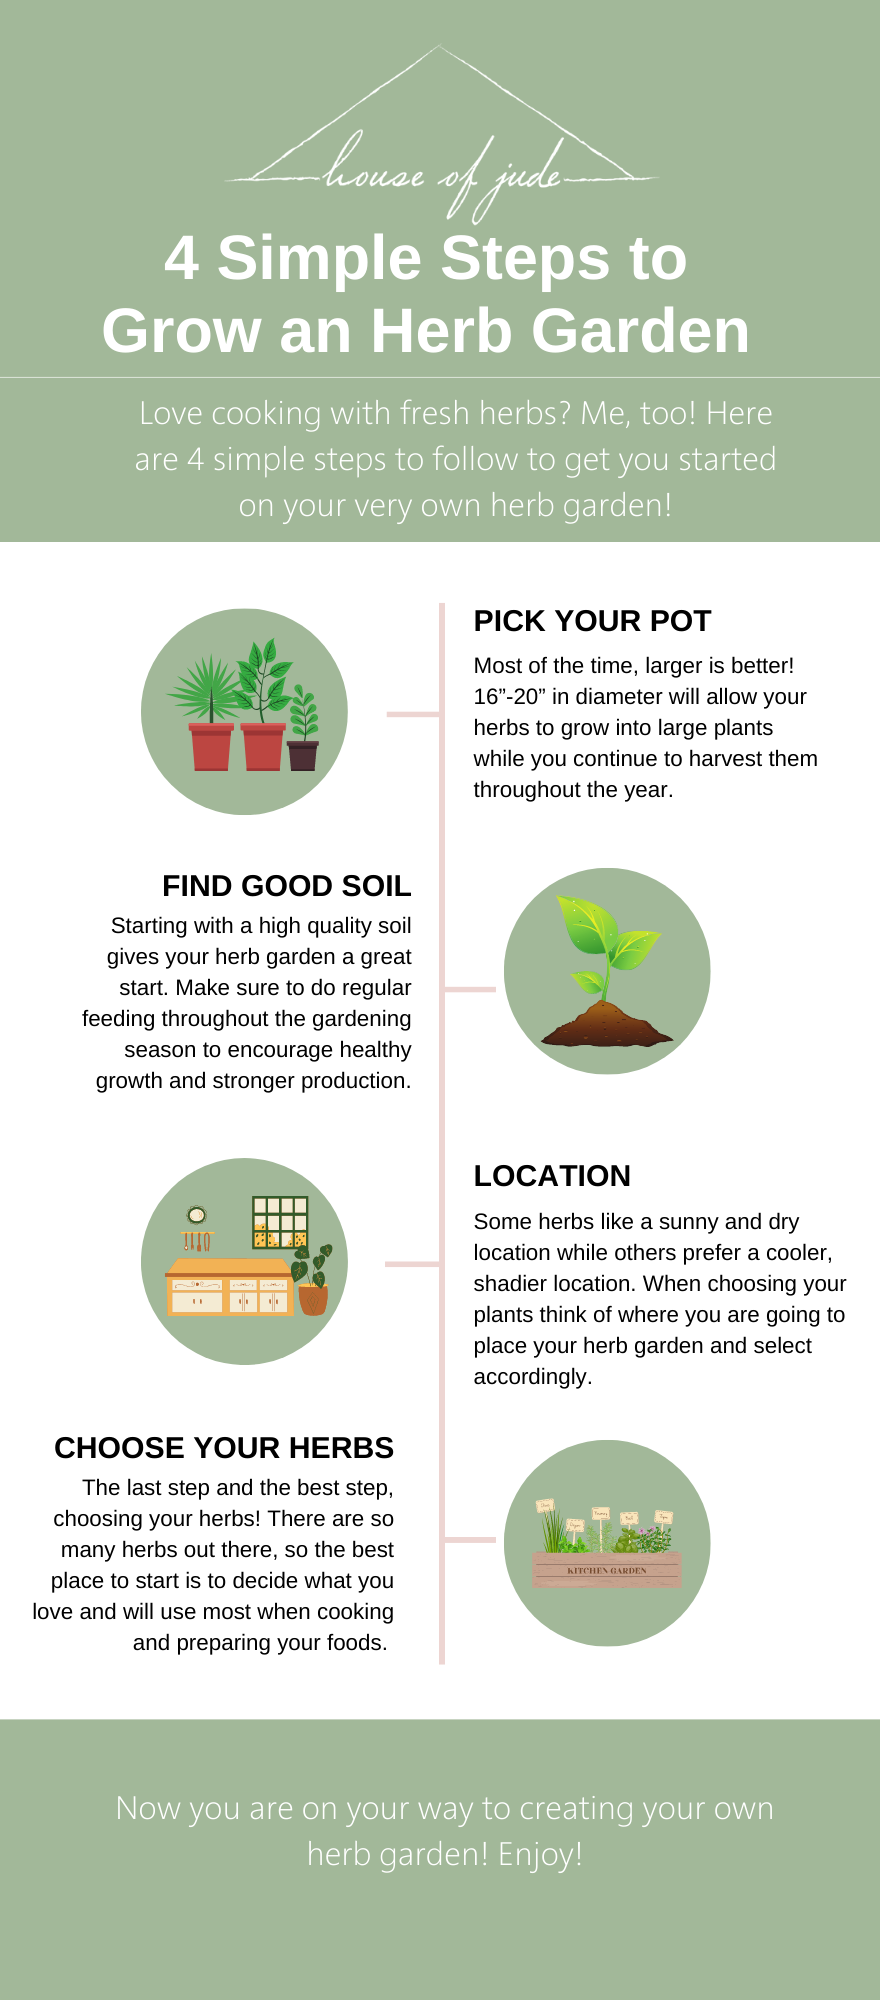 How to plant an herb garden infographic